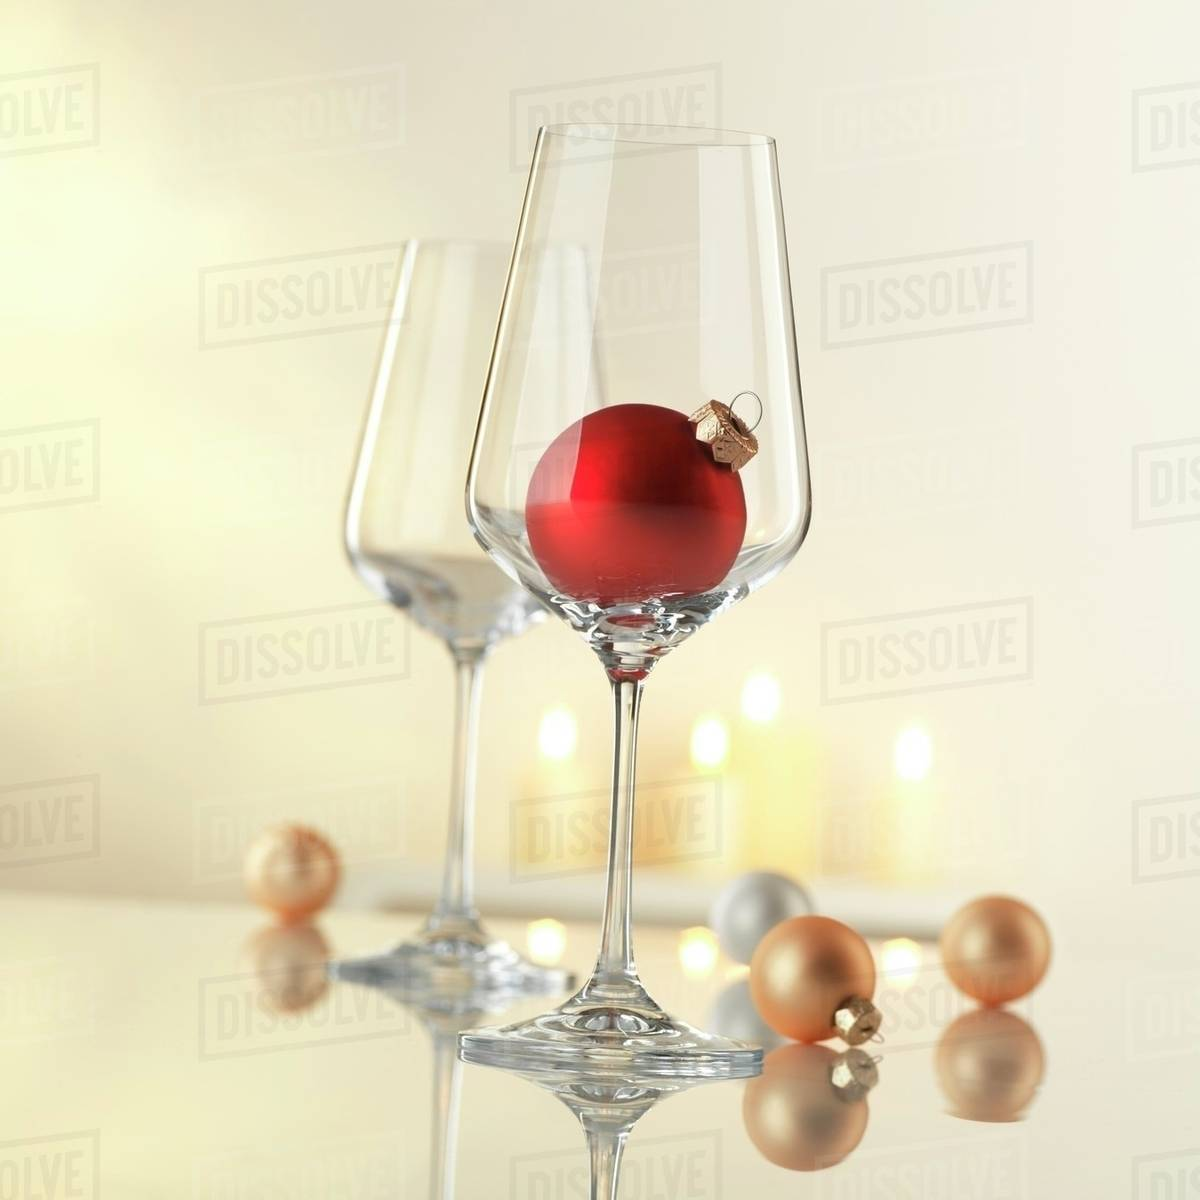 Wine Glasses With Christmas Decorations Stock Photo